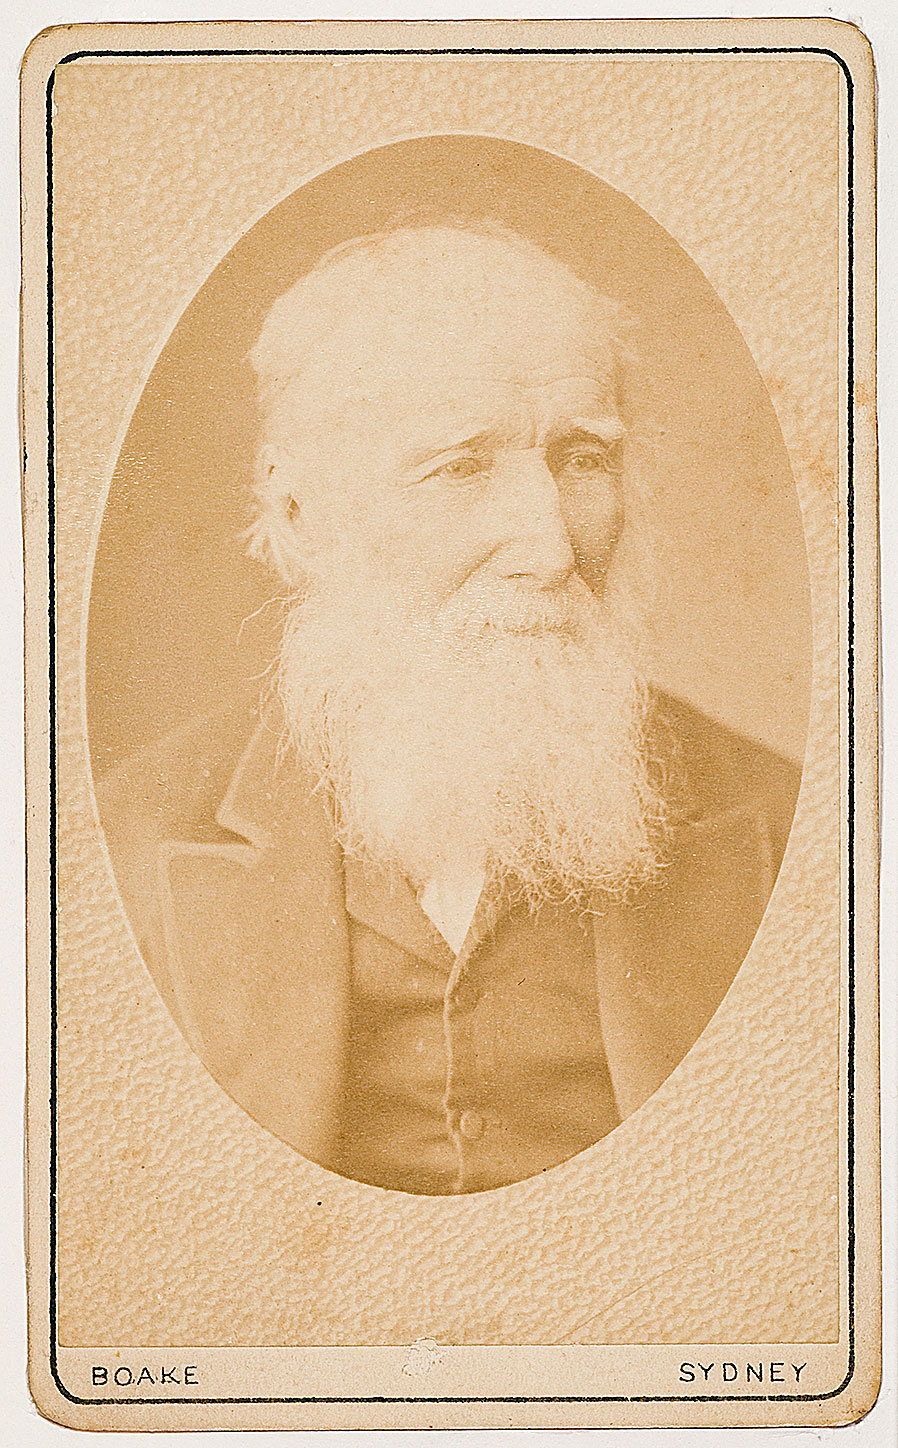 An old, sepia portrait of a white, bearded man.